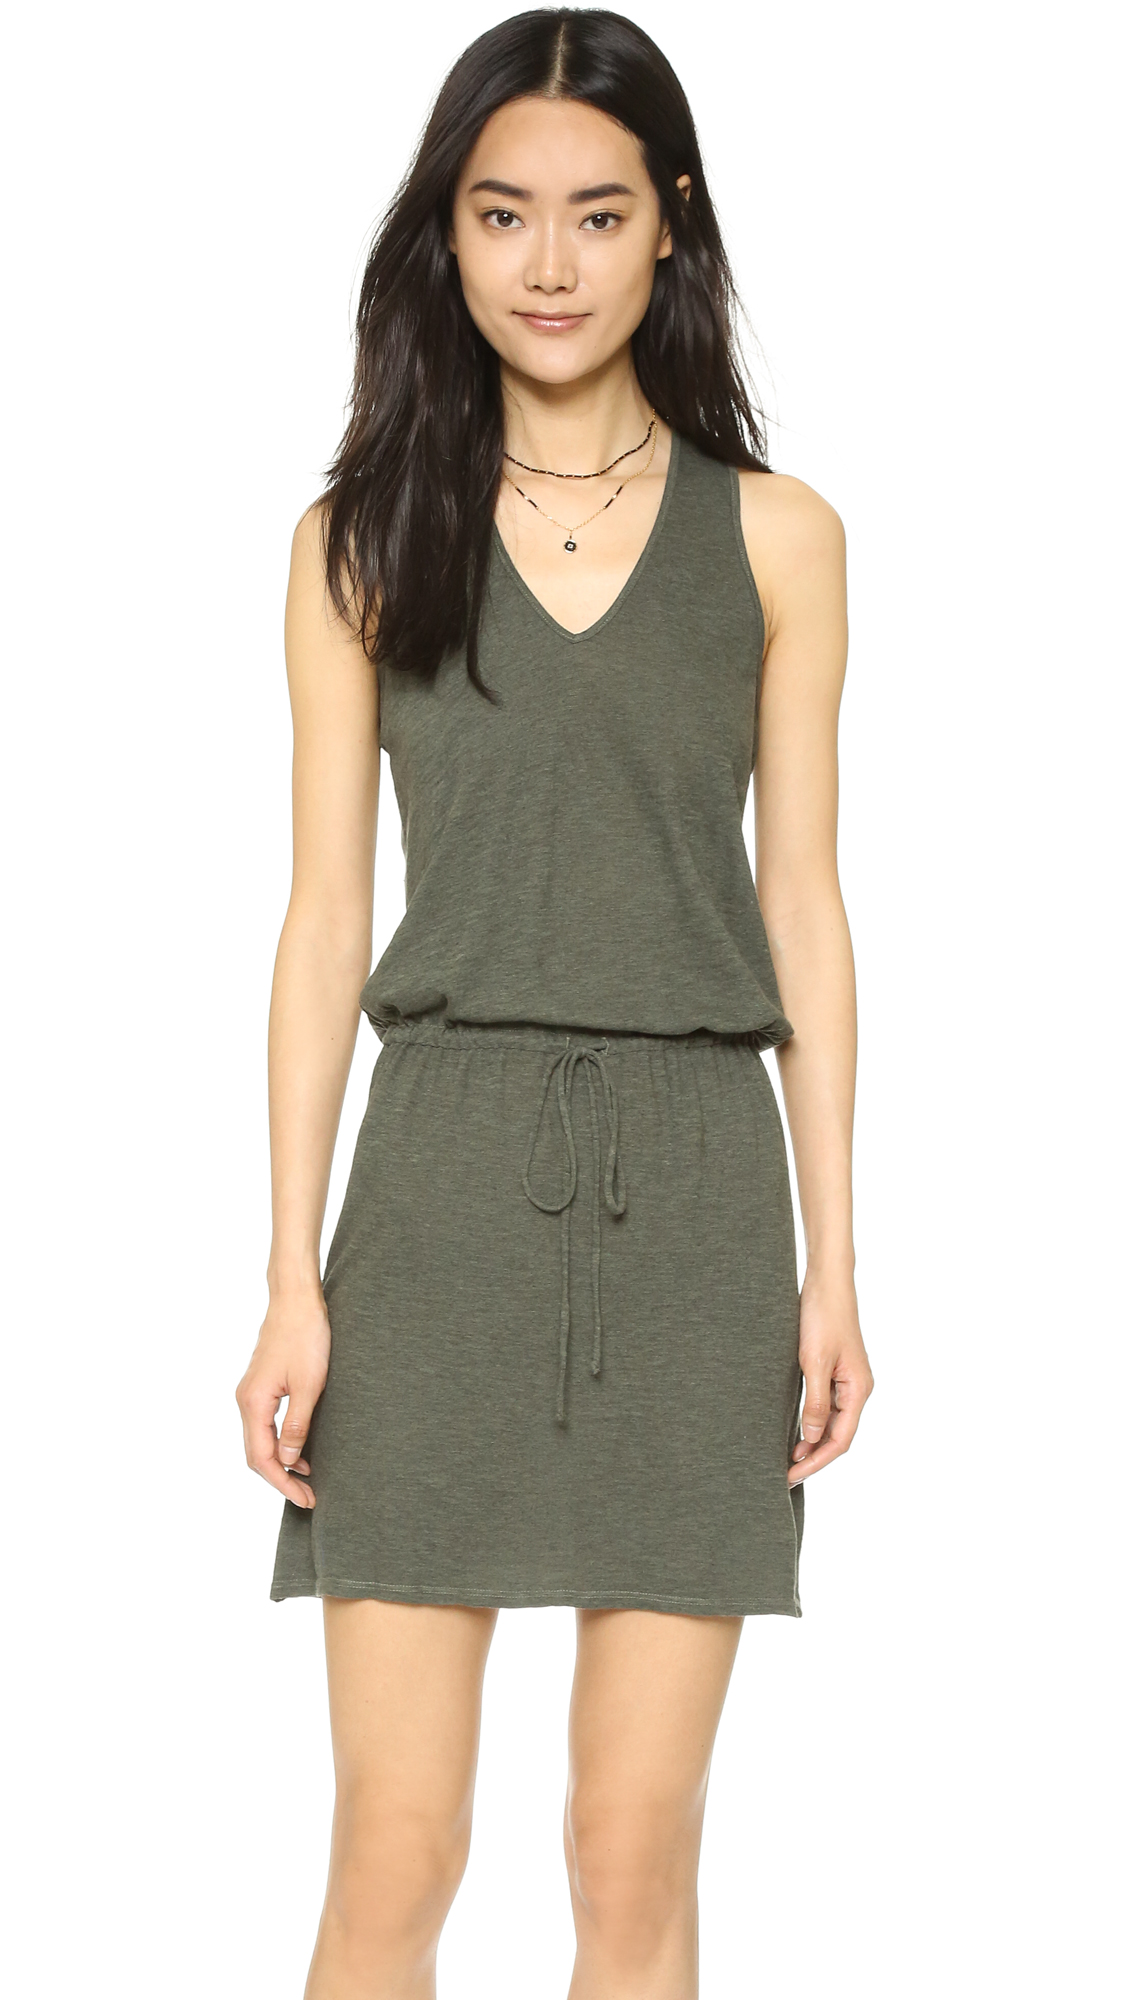 Lanston Racer Back Dress - Military at Shopbop